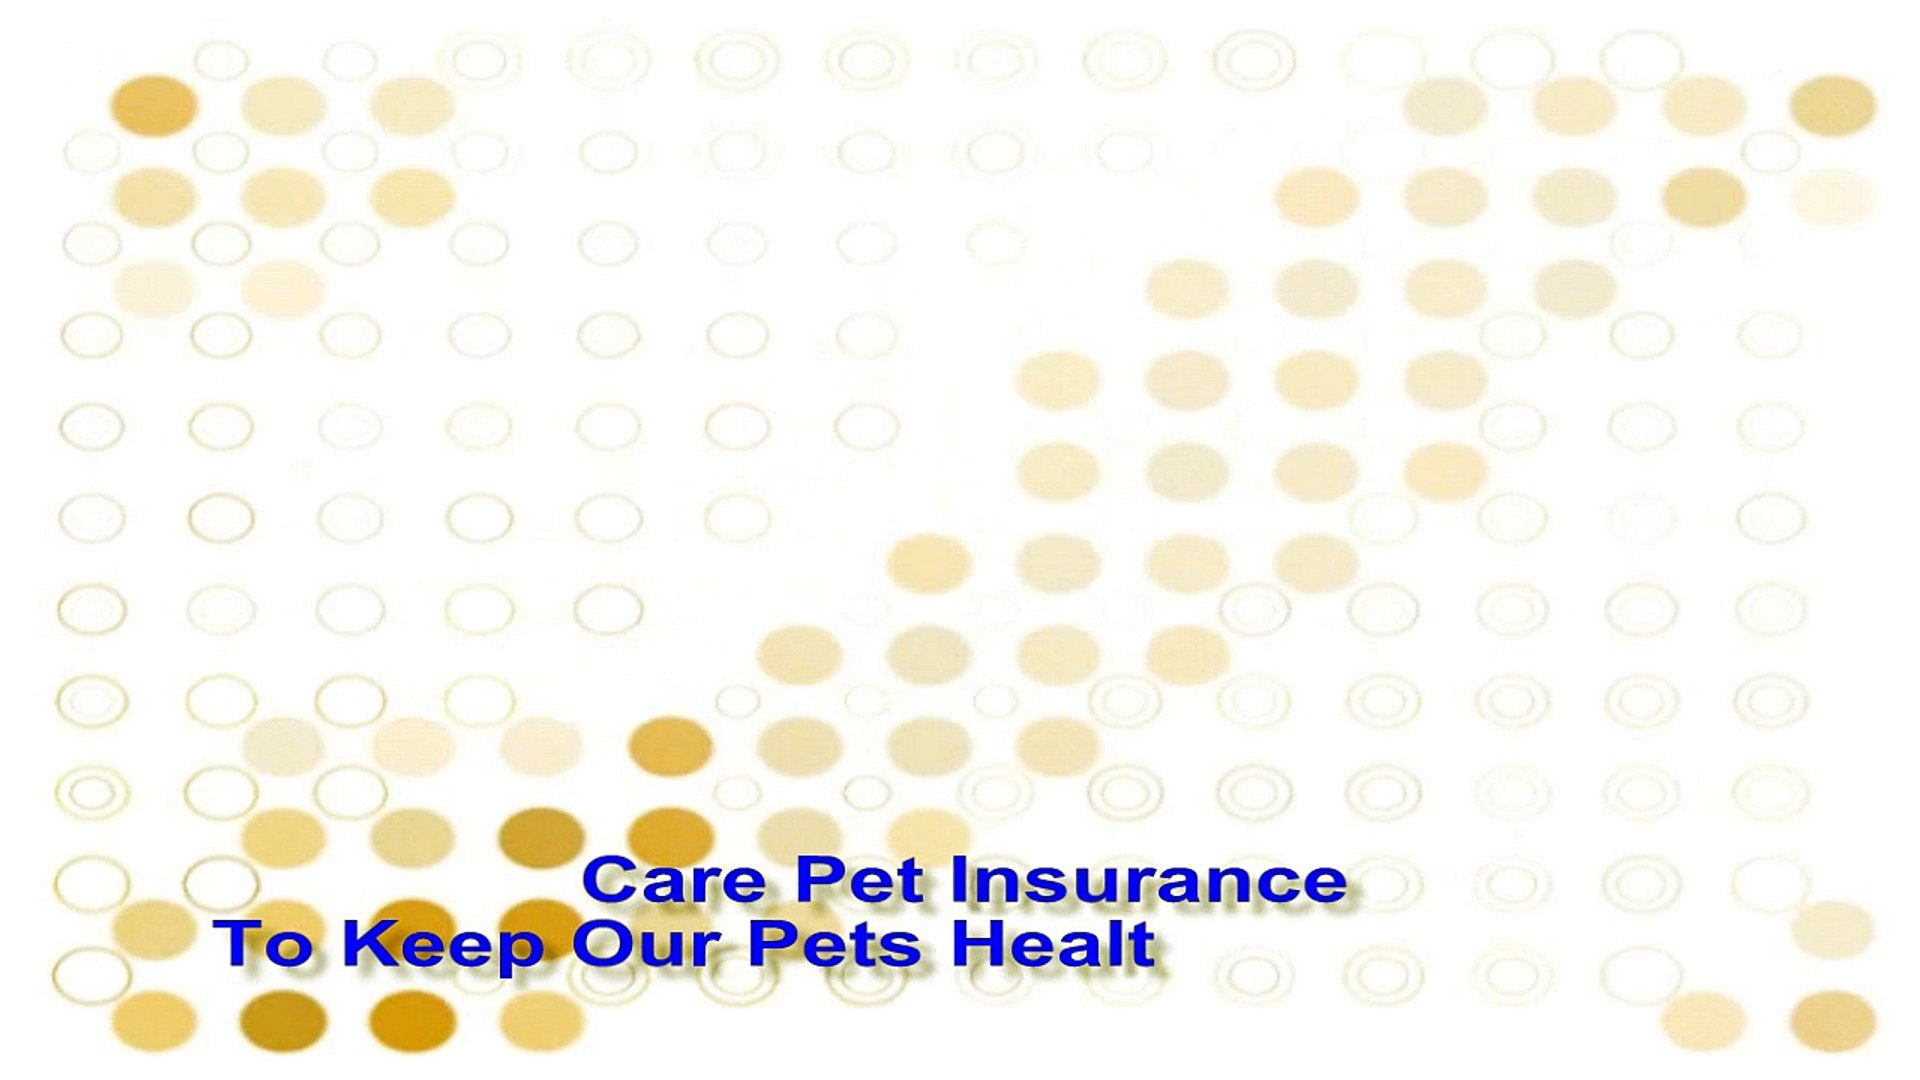 Care Pet Insurance - To Keep Our Pets Healthy and Happy! Tips and great ideas for you and your pets.